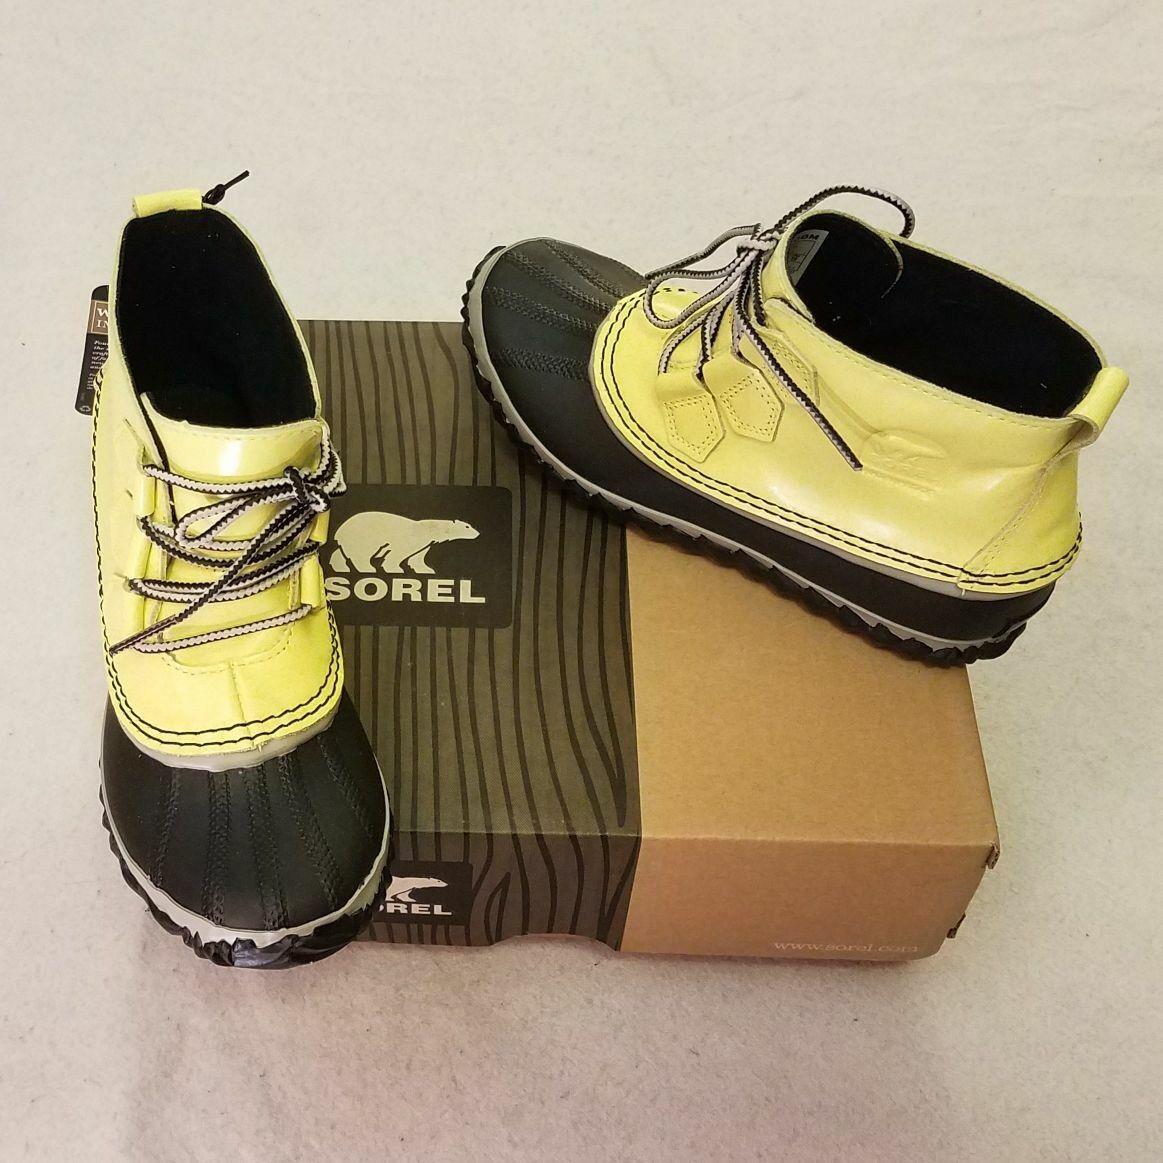 Sorel Donna giallo Rain Stivali Out 6 giallo Donna Out Stivali N About Zest Dove   30b3ed